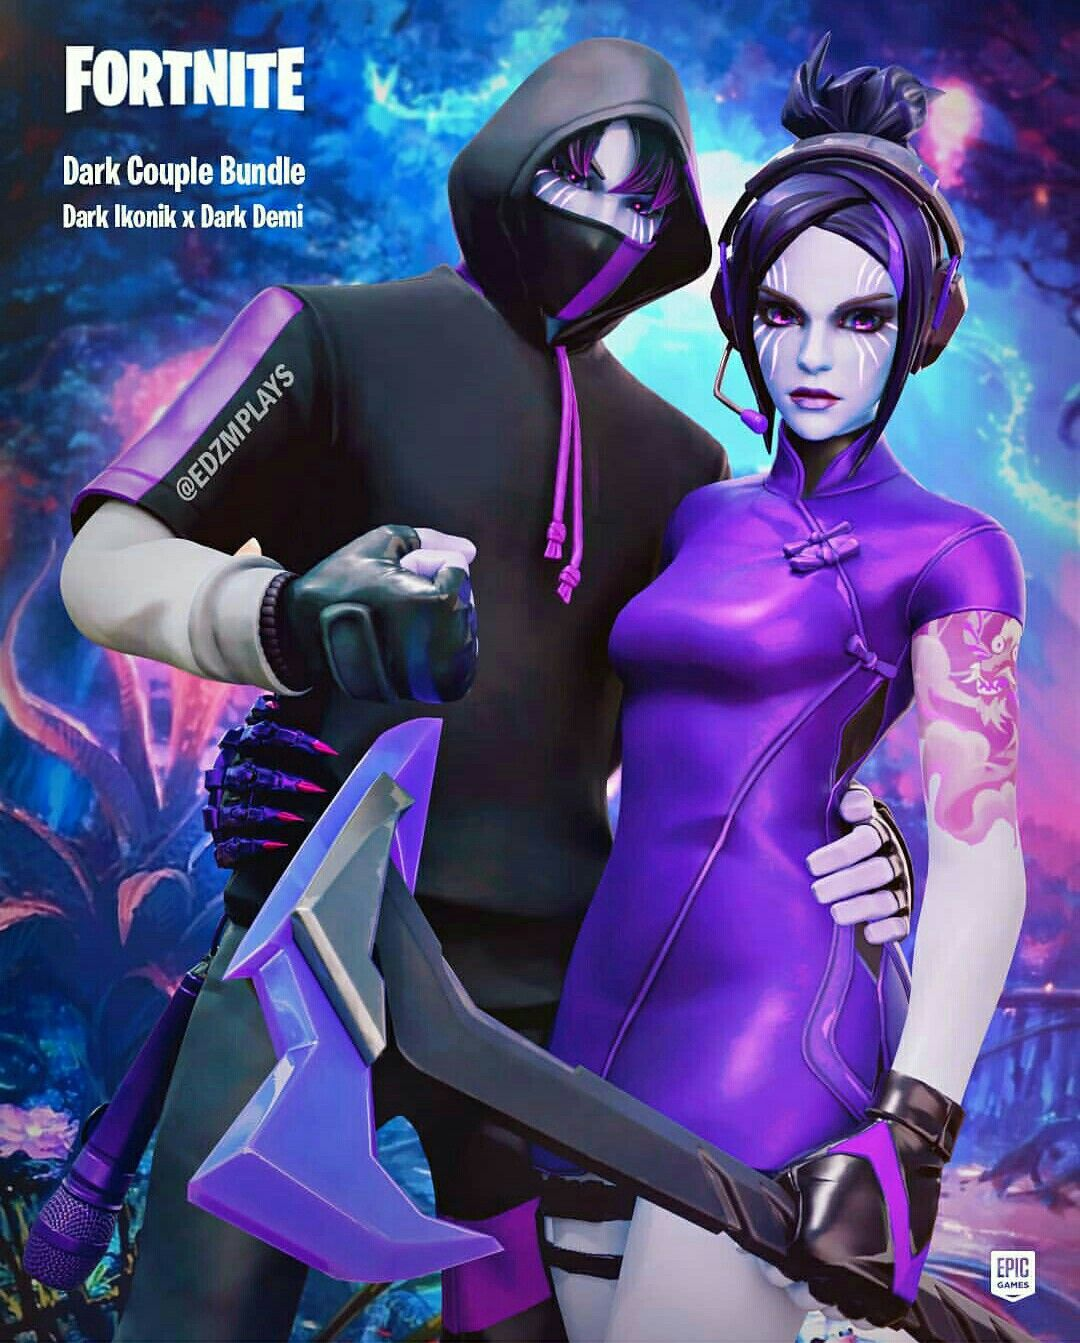 Fortnite Best Gaming Wallpapers Cute Couple Pictures Skin Images